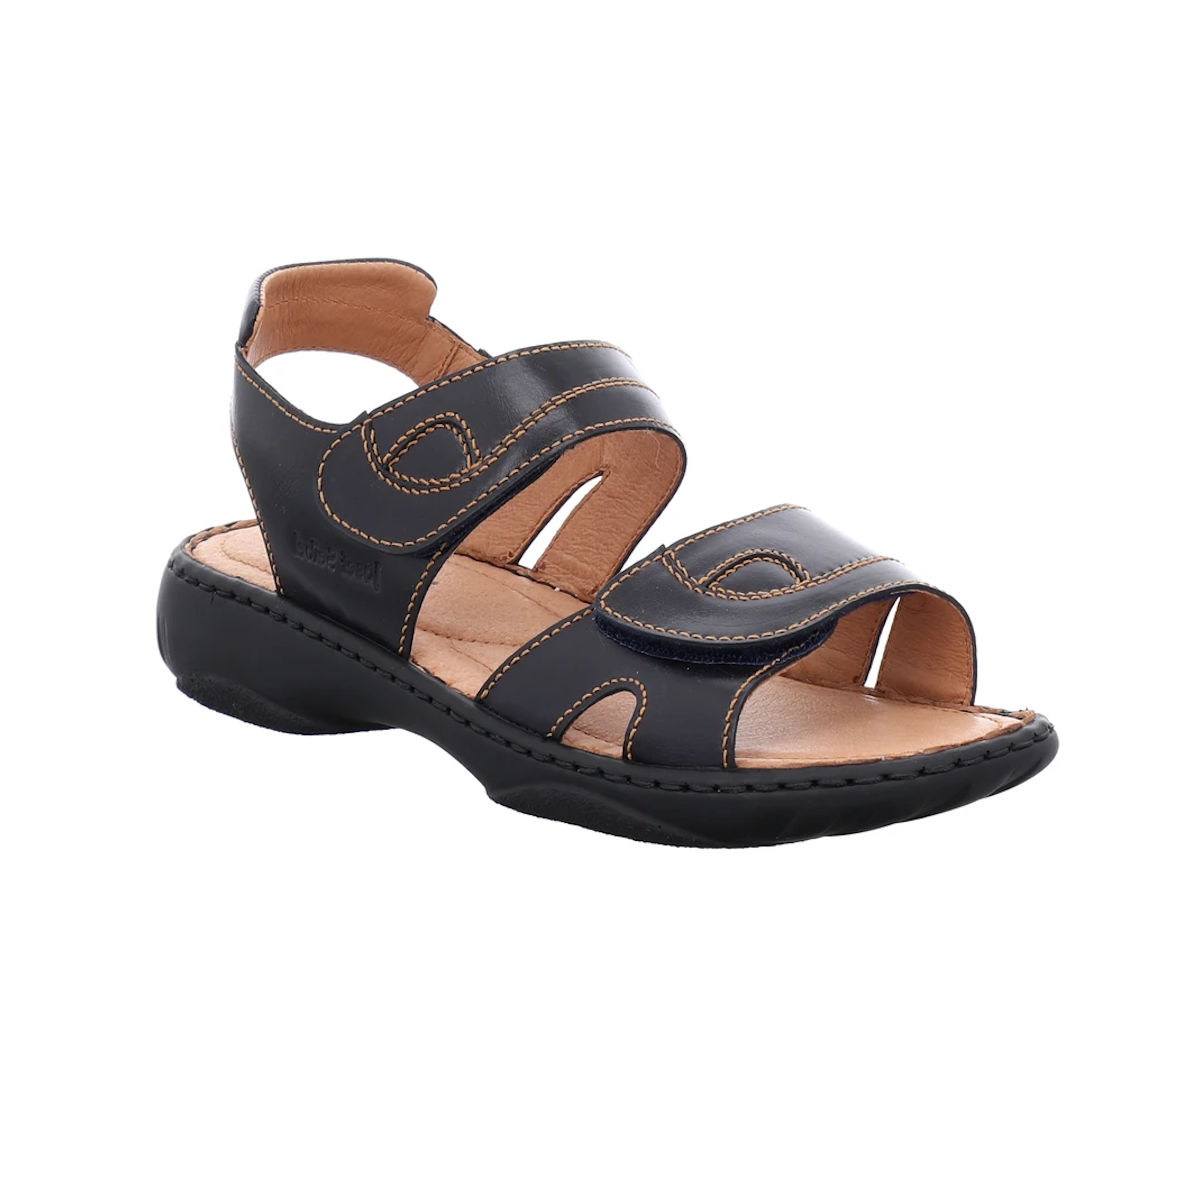 Josef Seibel Debra Blue Sandal for women